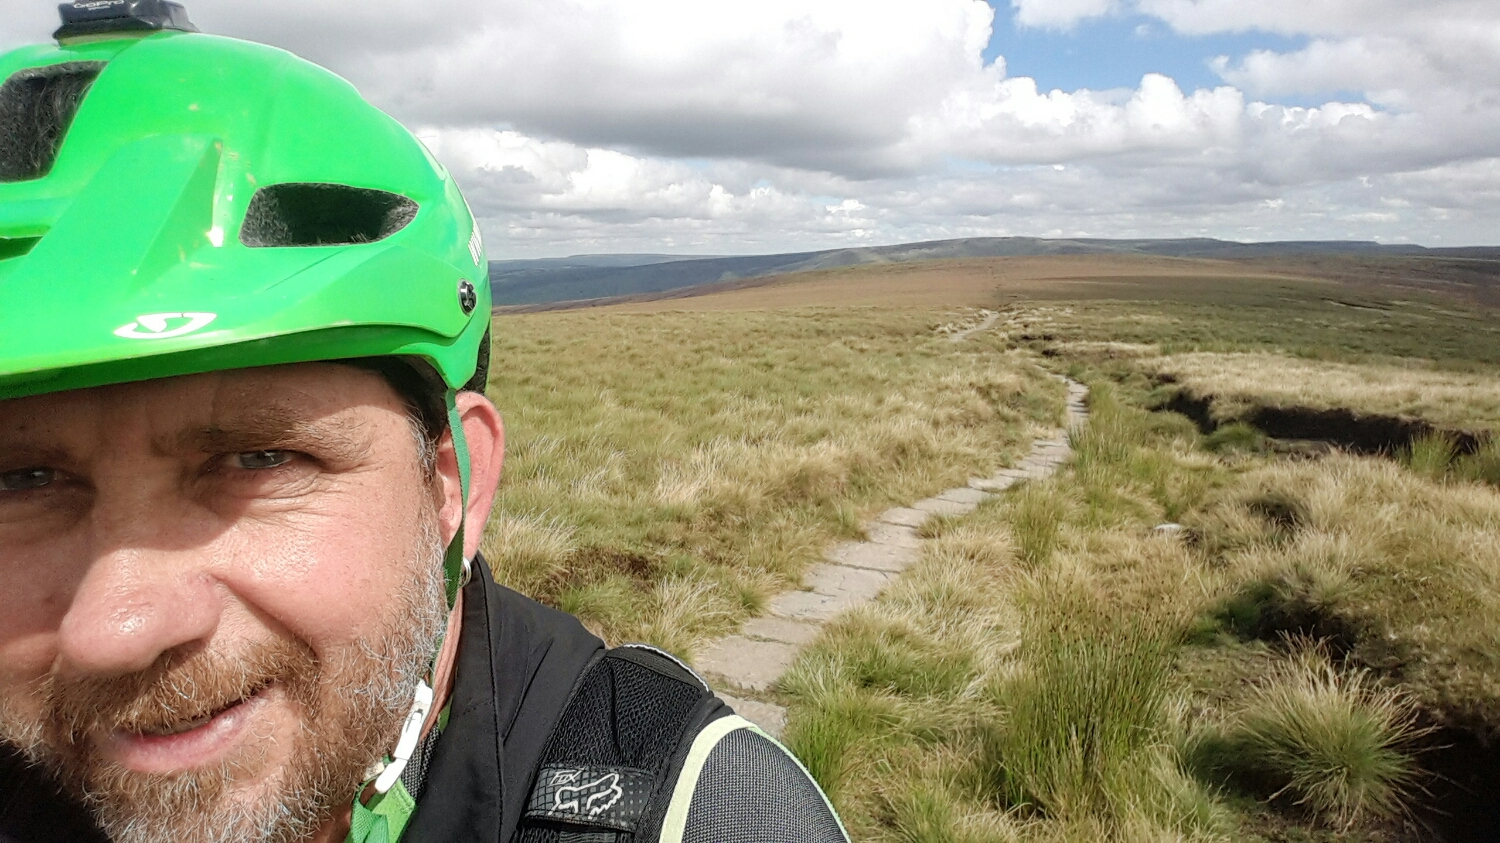 This is the Pennine way. It runs across the top of England from one side to the other.  There are 1000s of meters of these hand laid stone slabs that run across the tops.